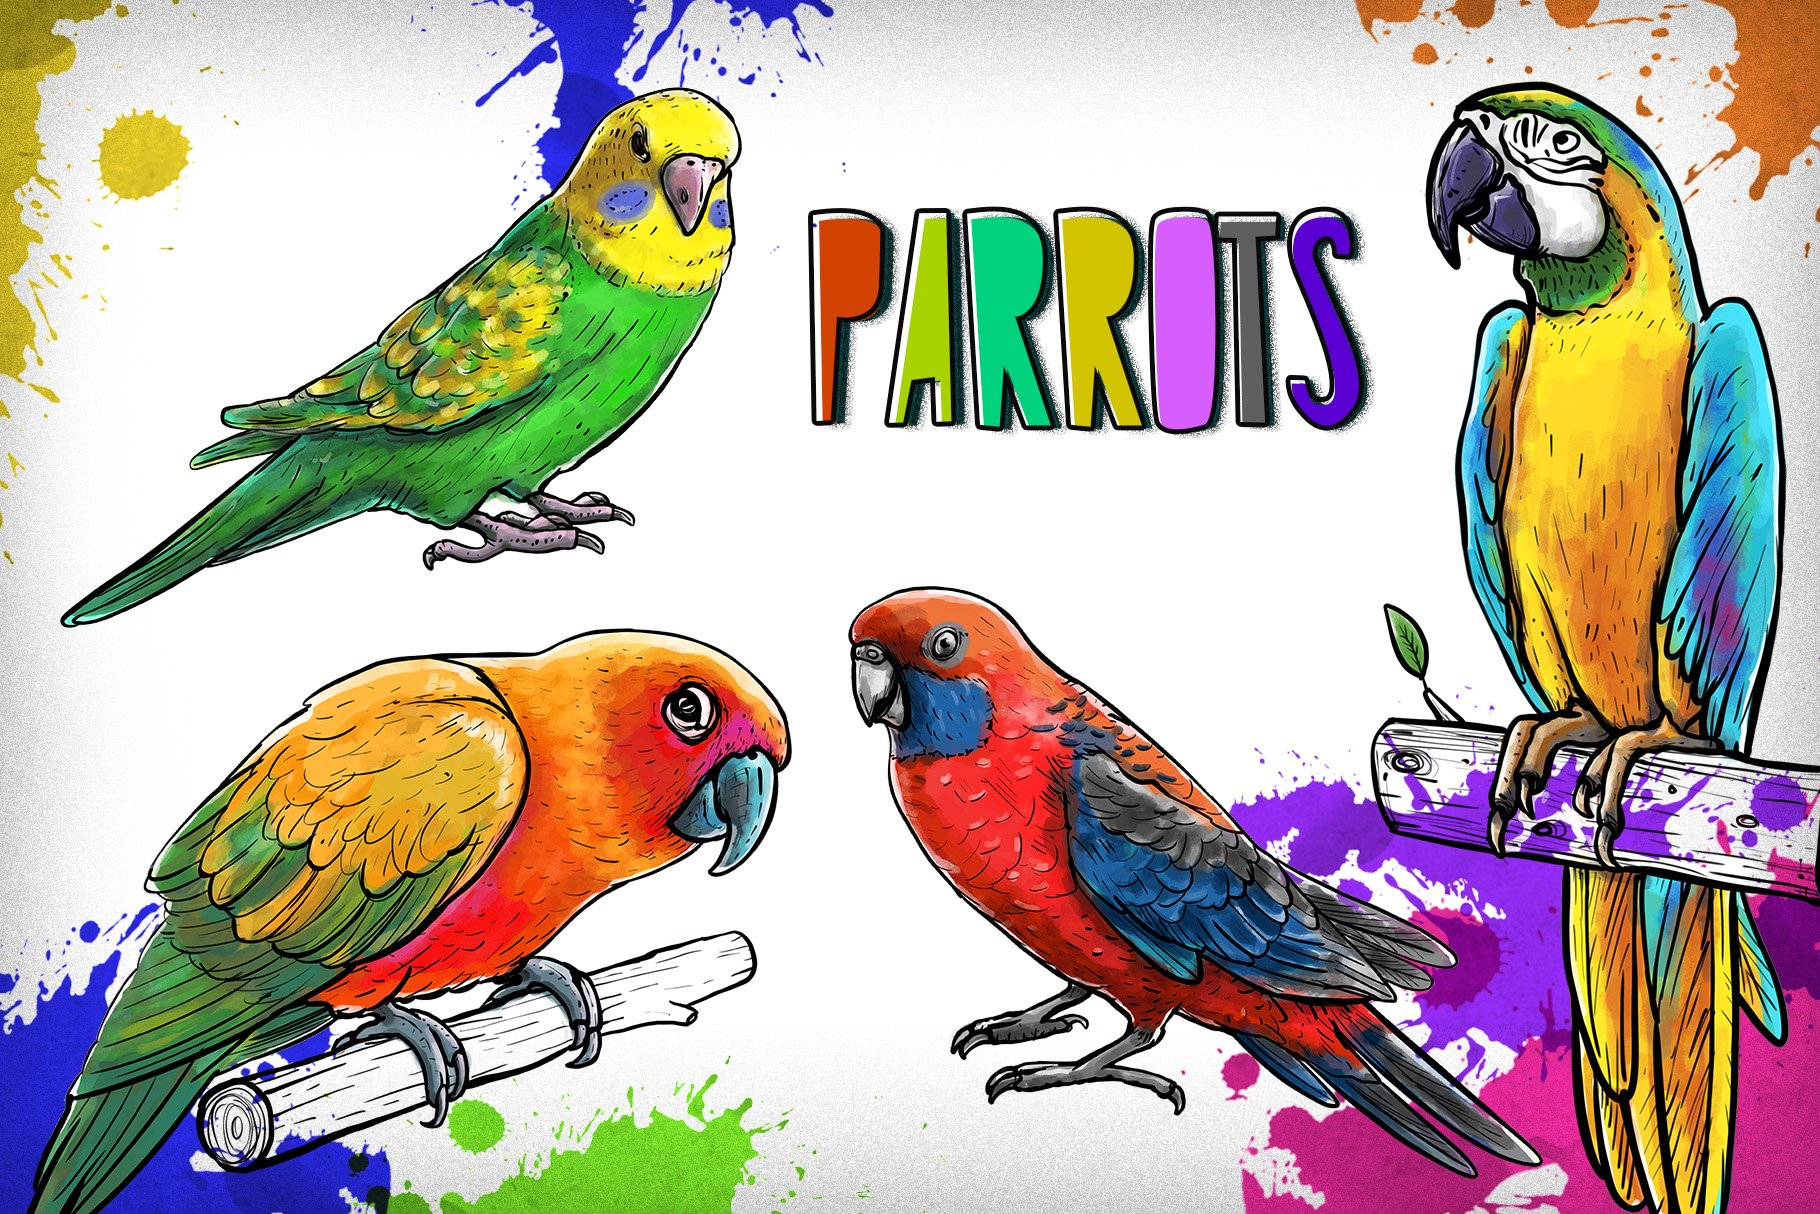 Drawn parrots example image 1